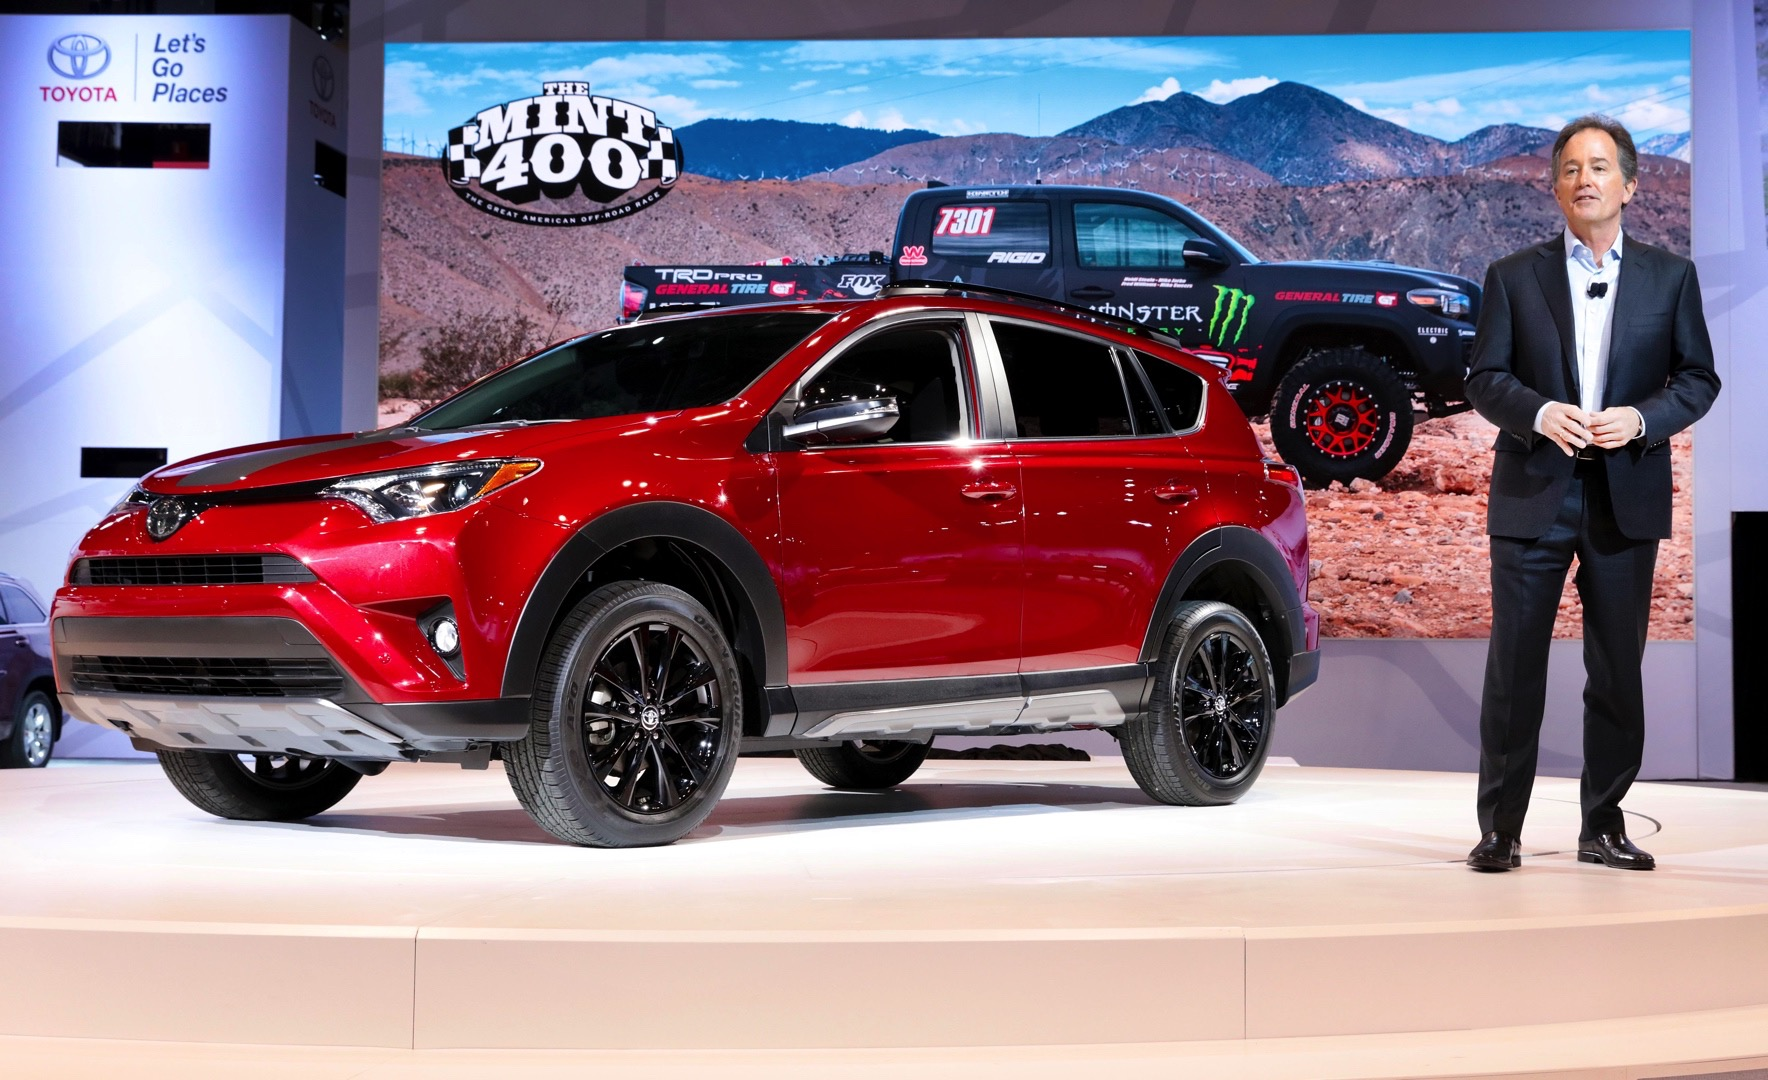 2018 toyota rav4 adds adventure trim level autoevolution. Black Bedroom Furniture Sets. Home Design Ideas